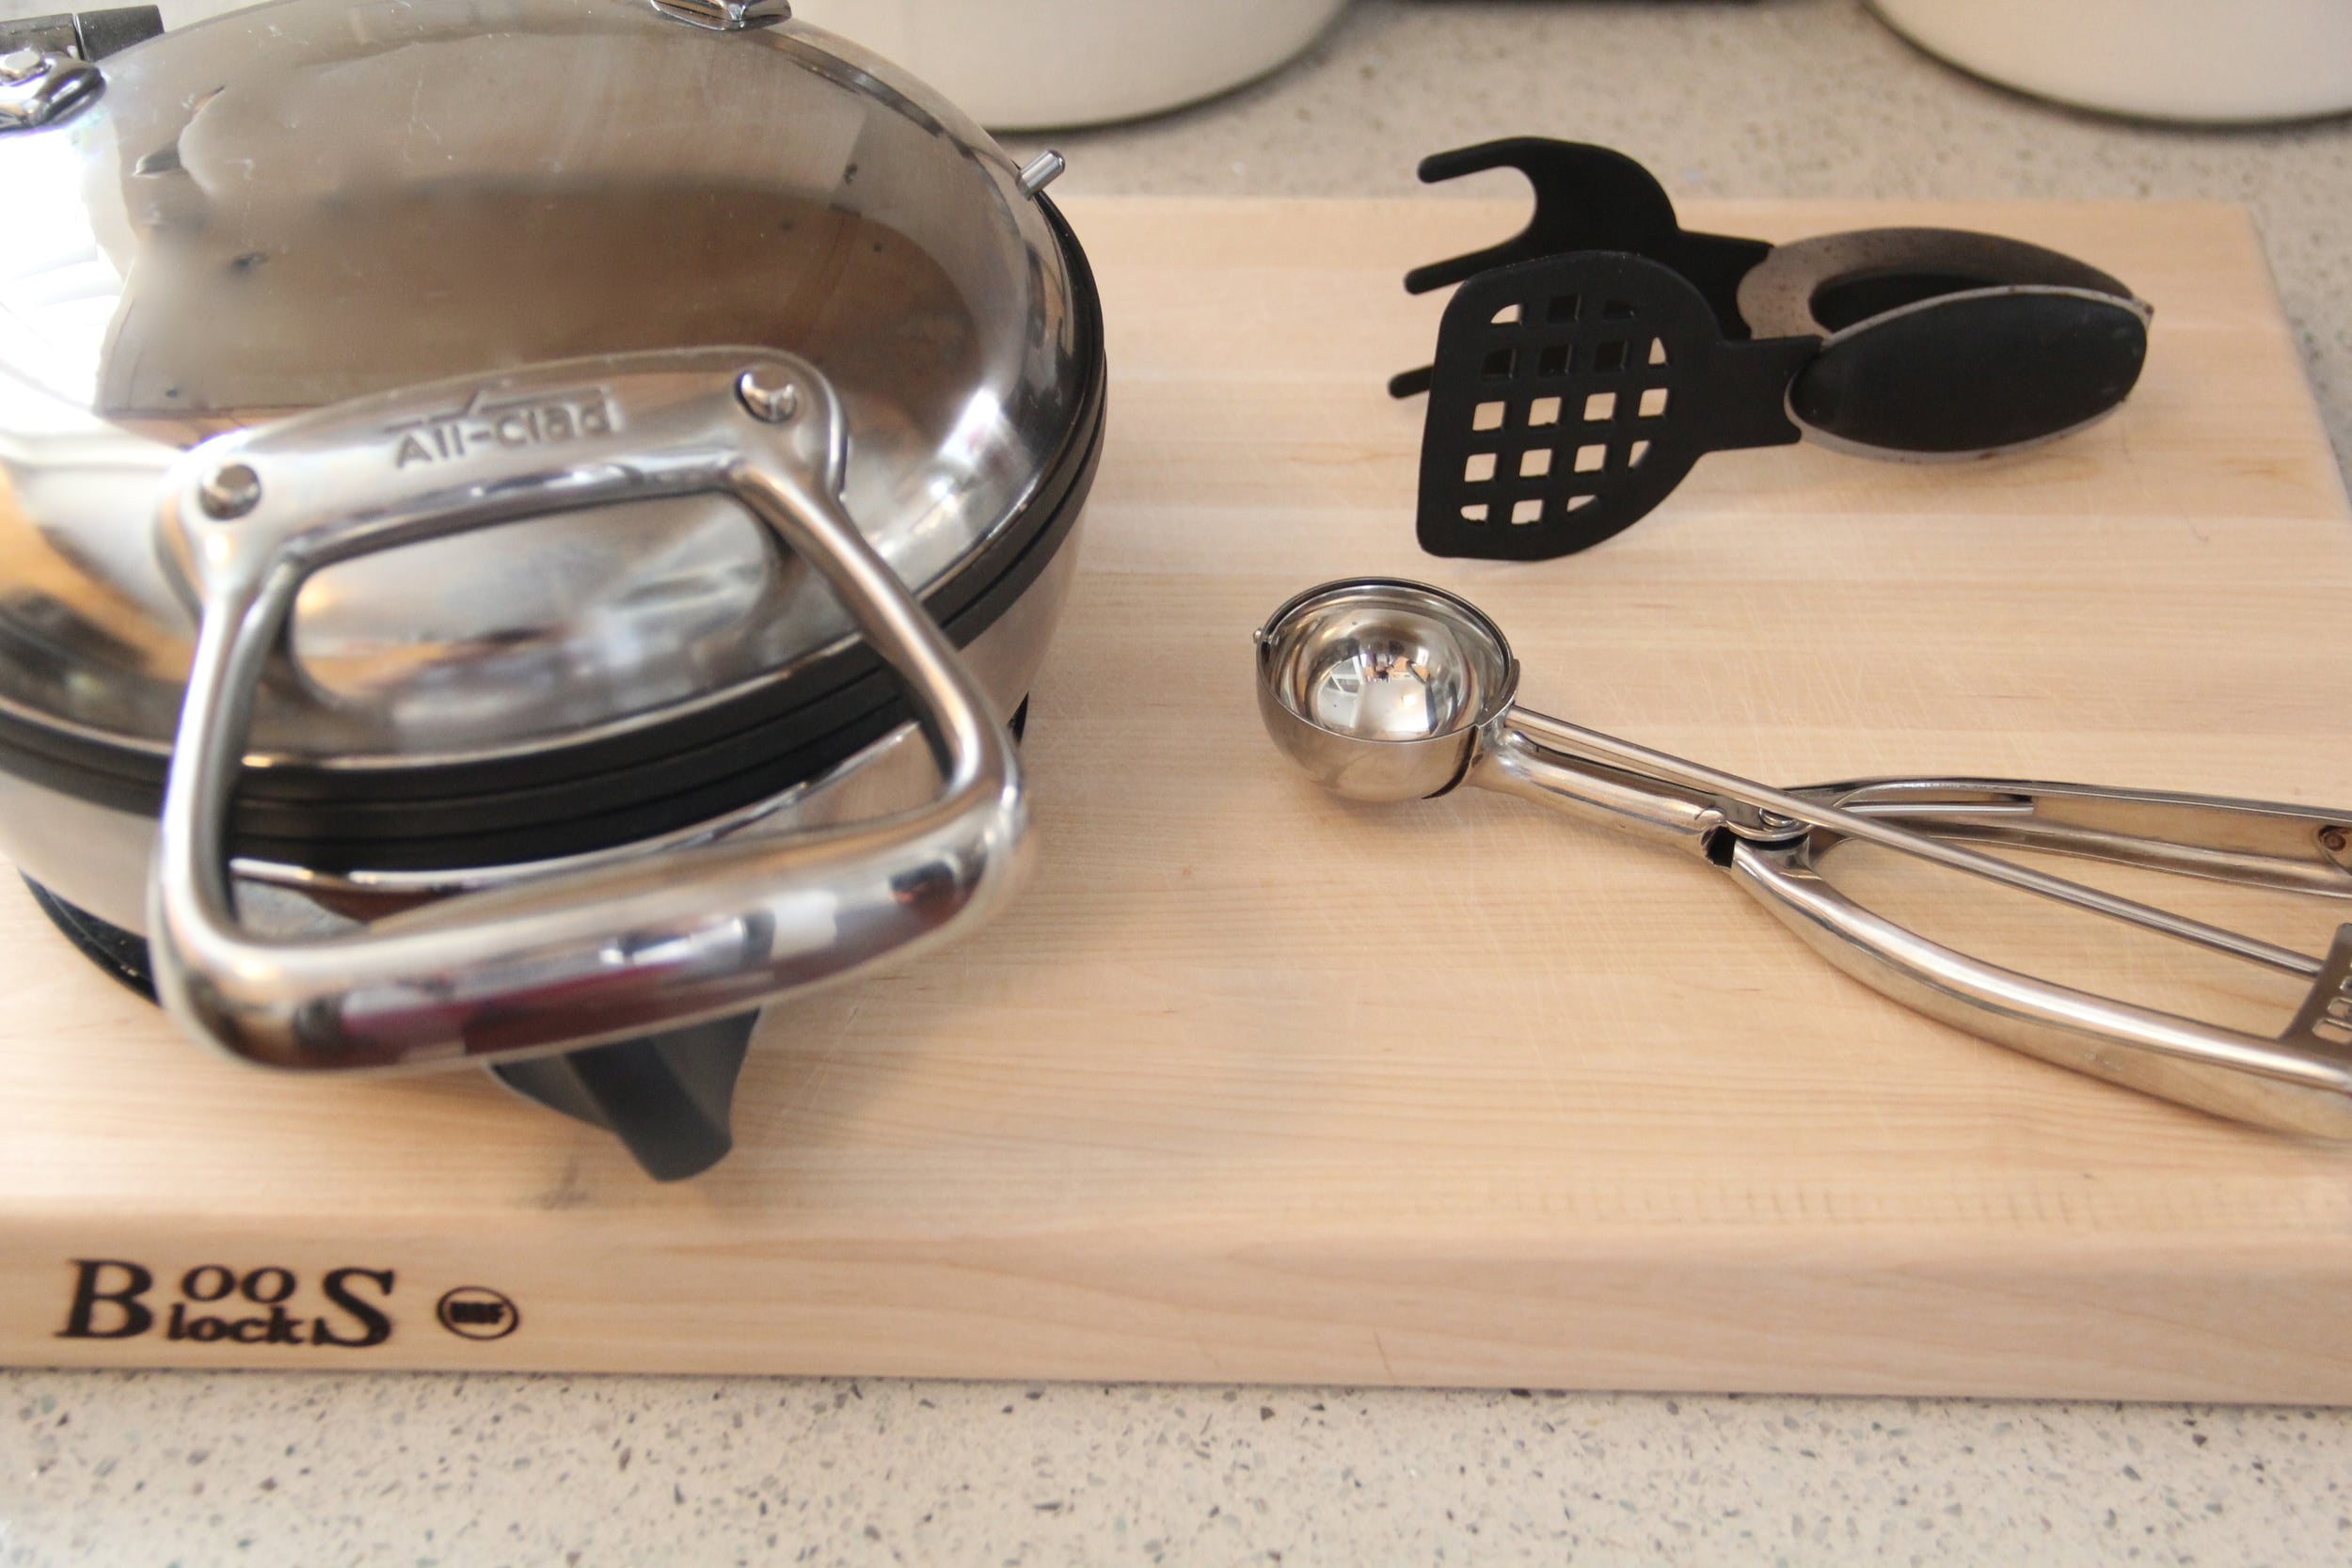 All Clad Classic Waffle Iron.JPG